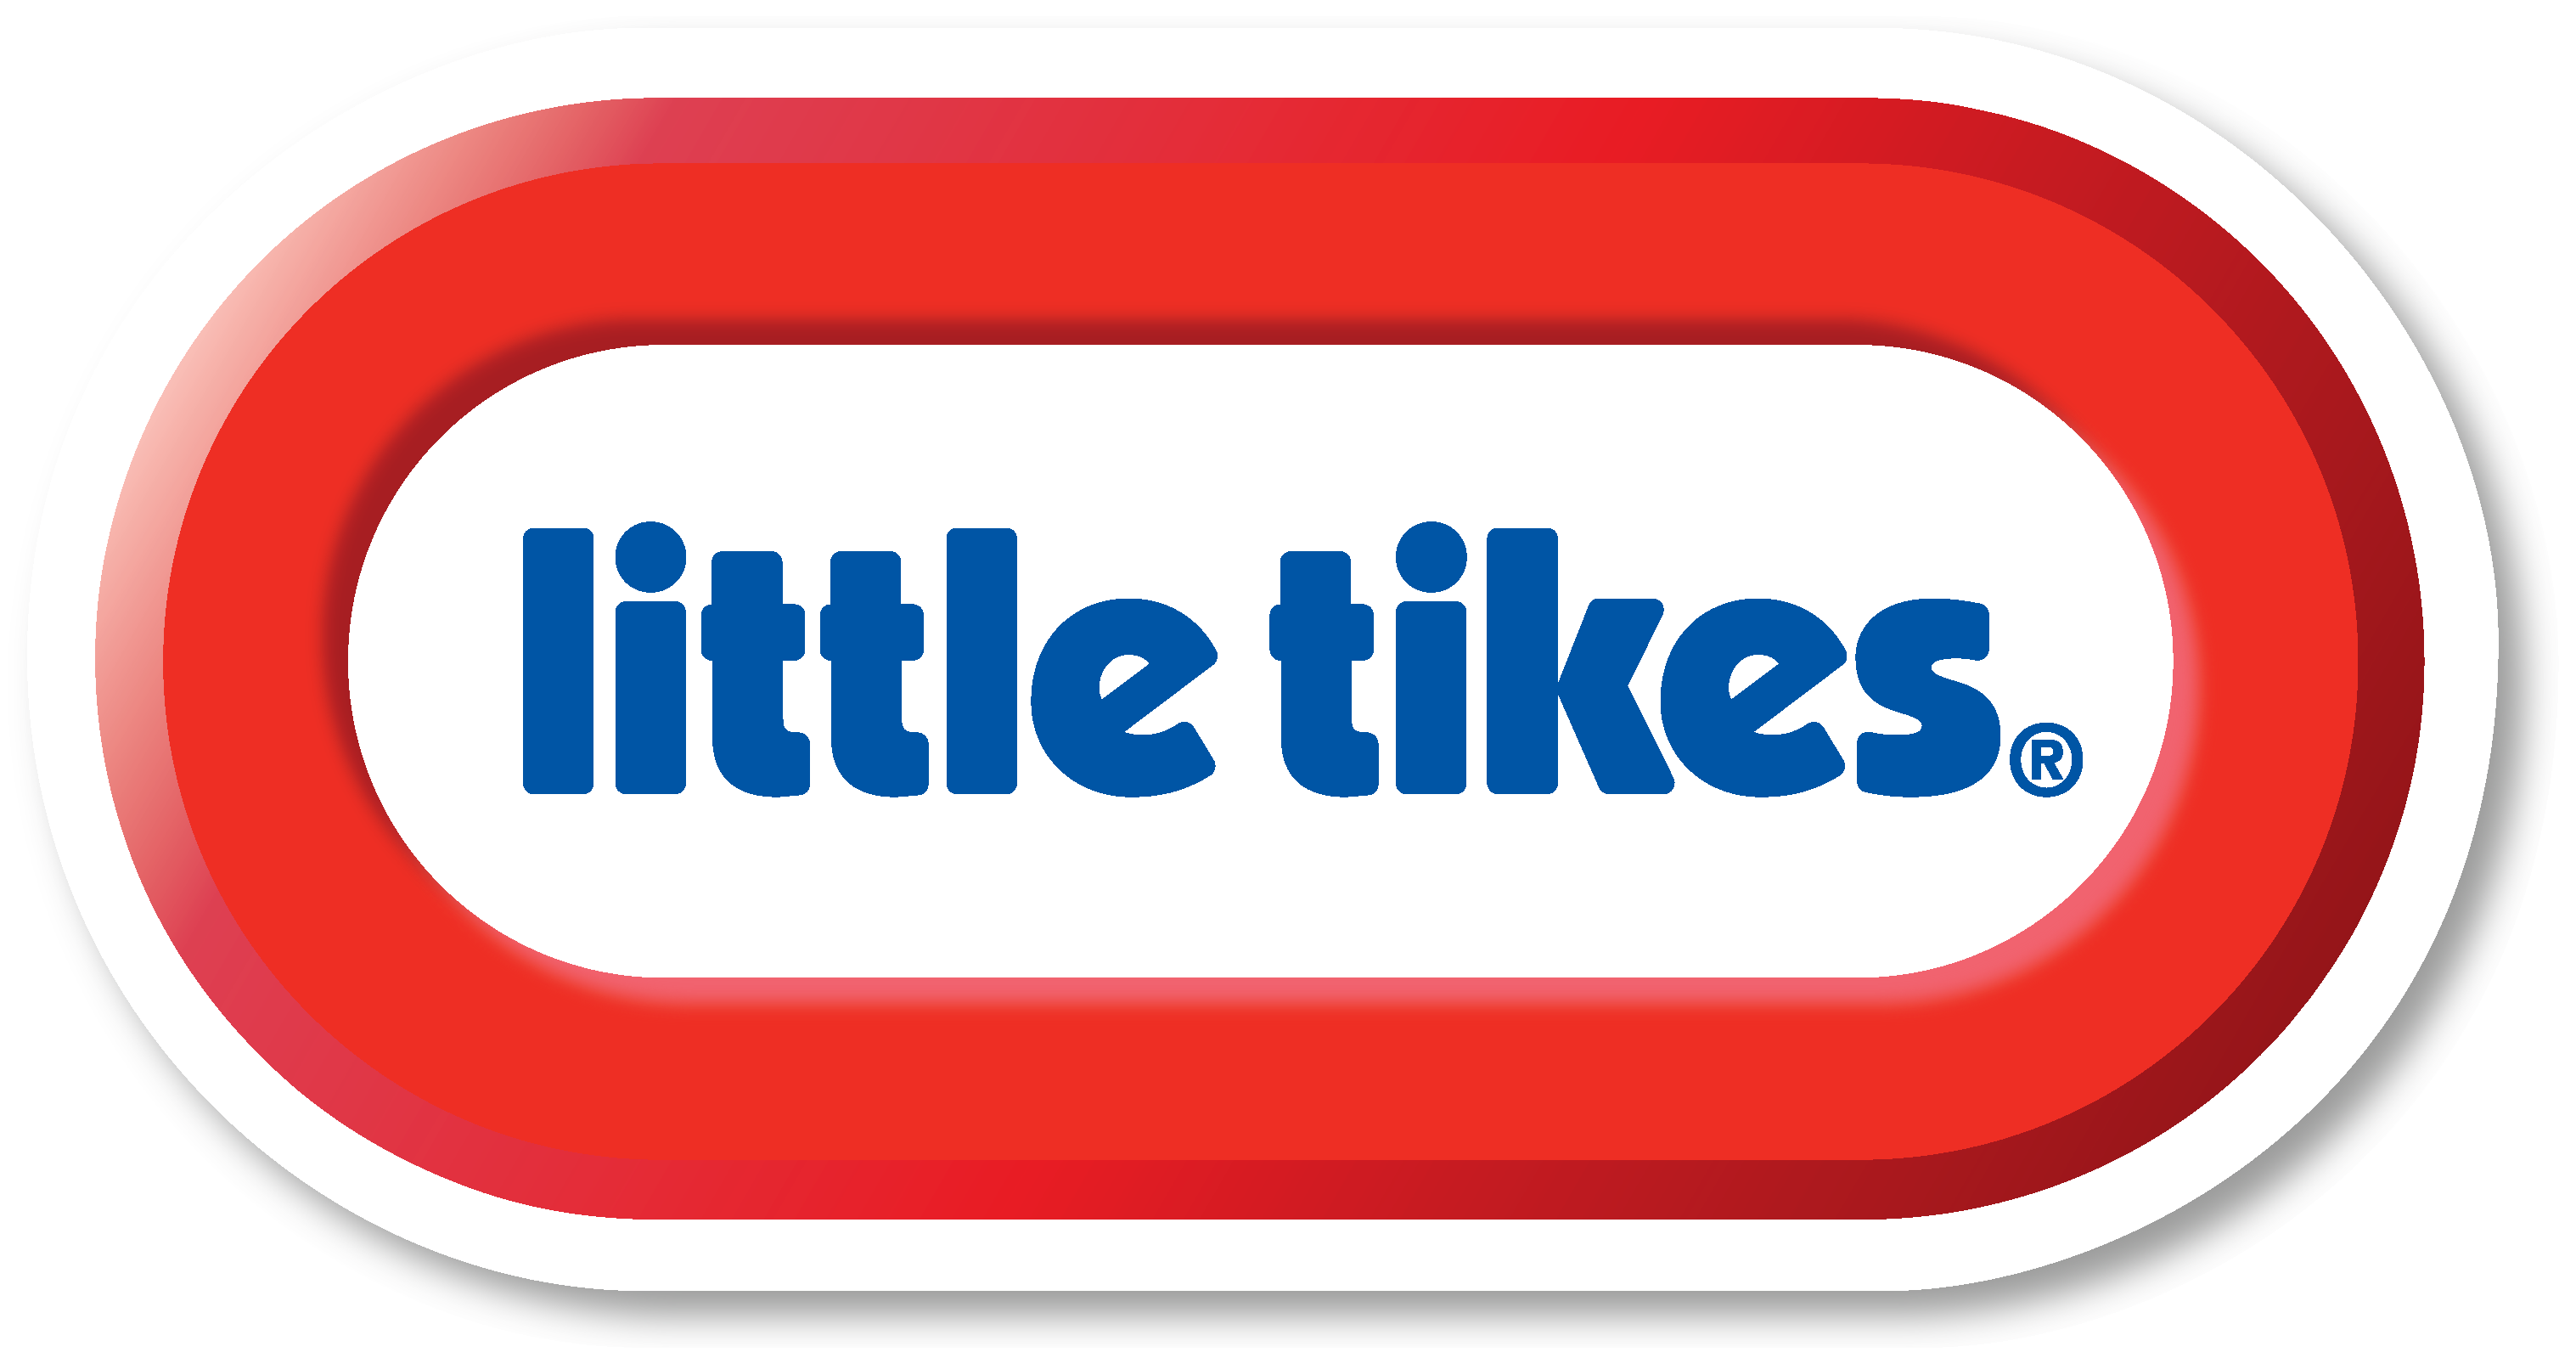 Clipart kitchen kitchenette. Little tikes cook with